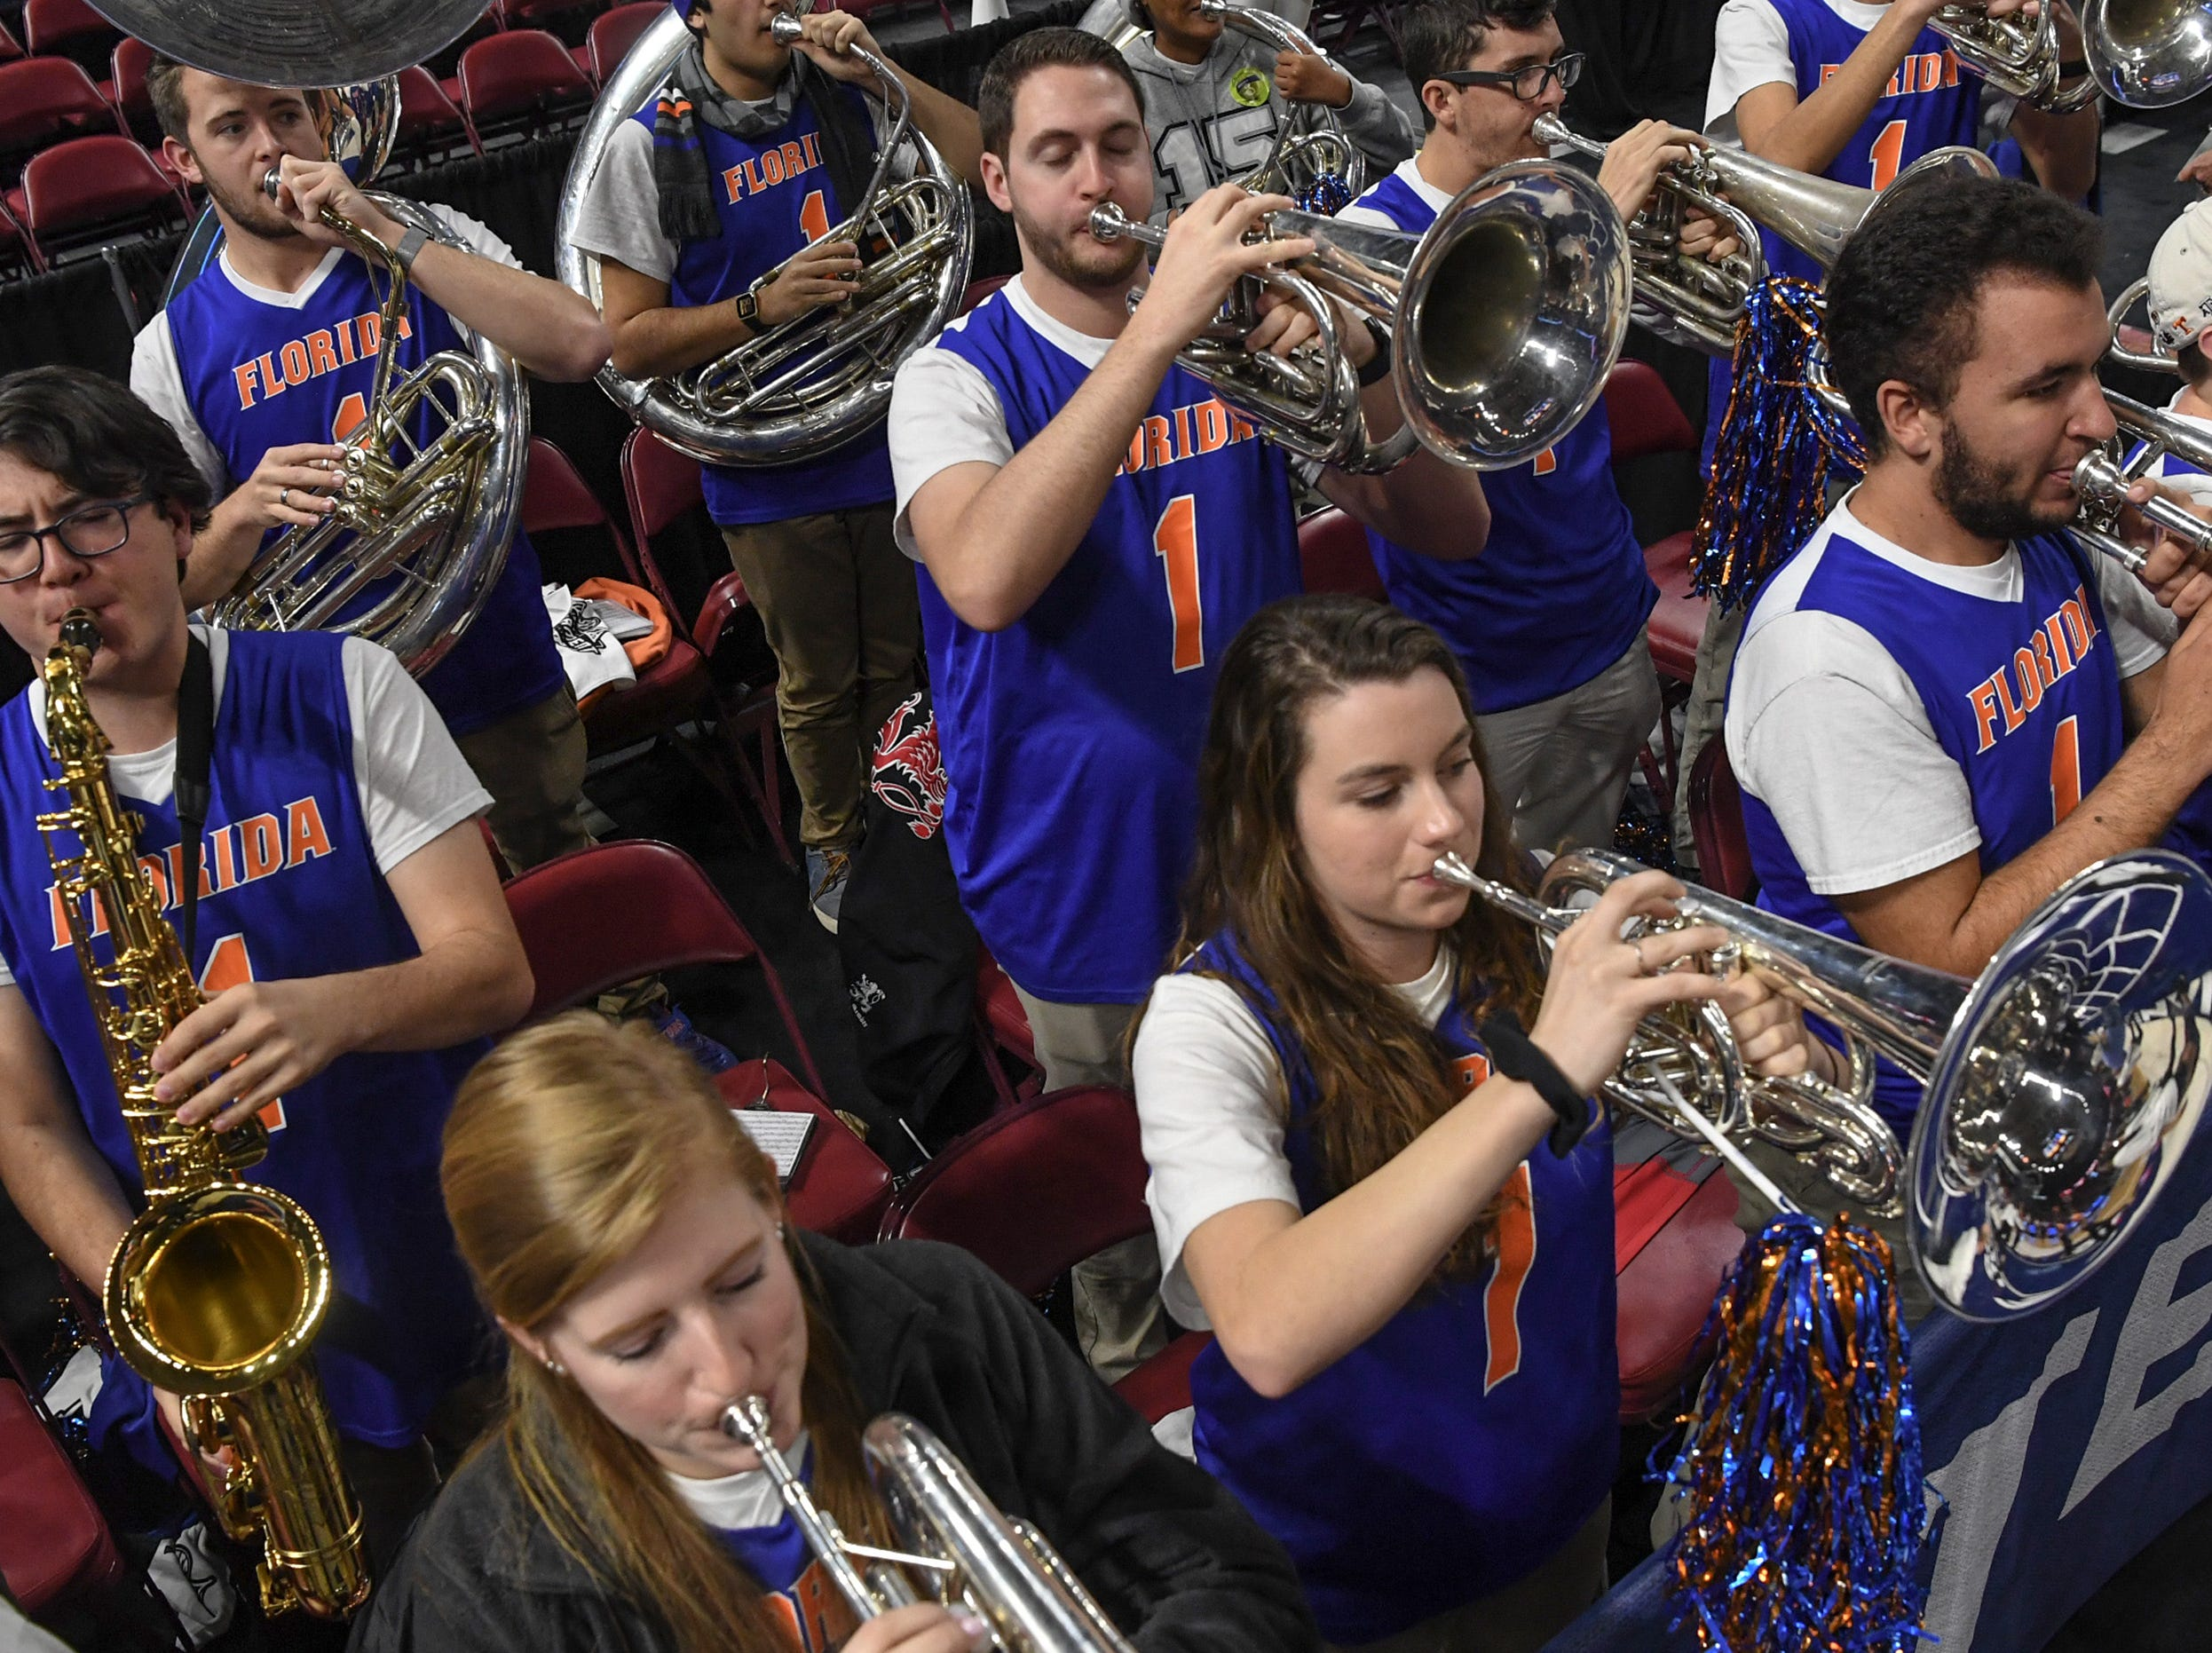 Florida band play after their win over Ole Miss during the Southeastern Conference Women's Tournament game at Bon Secour Wellness Arena in Greenville Wednesday, March 6, 2019.